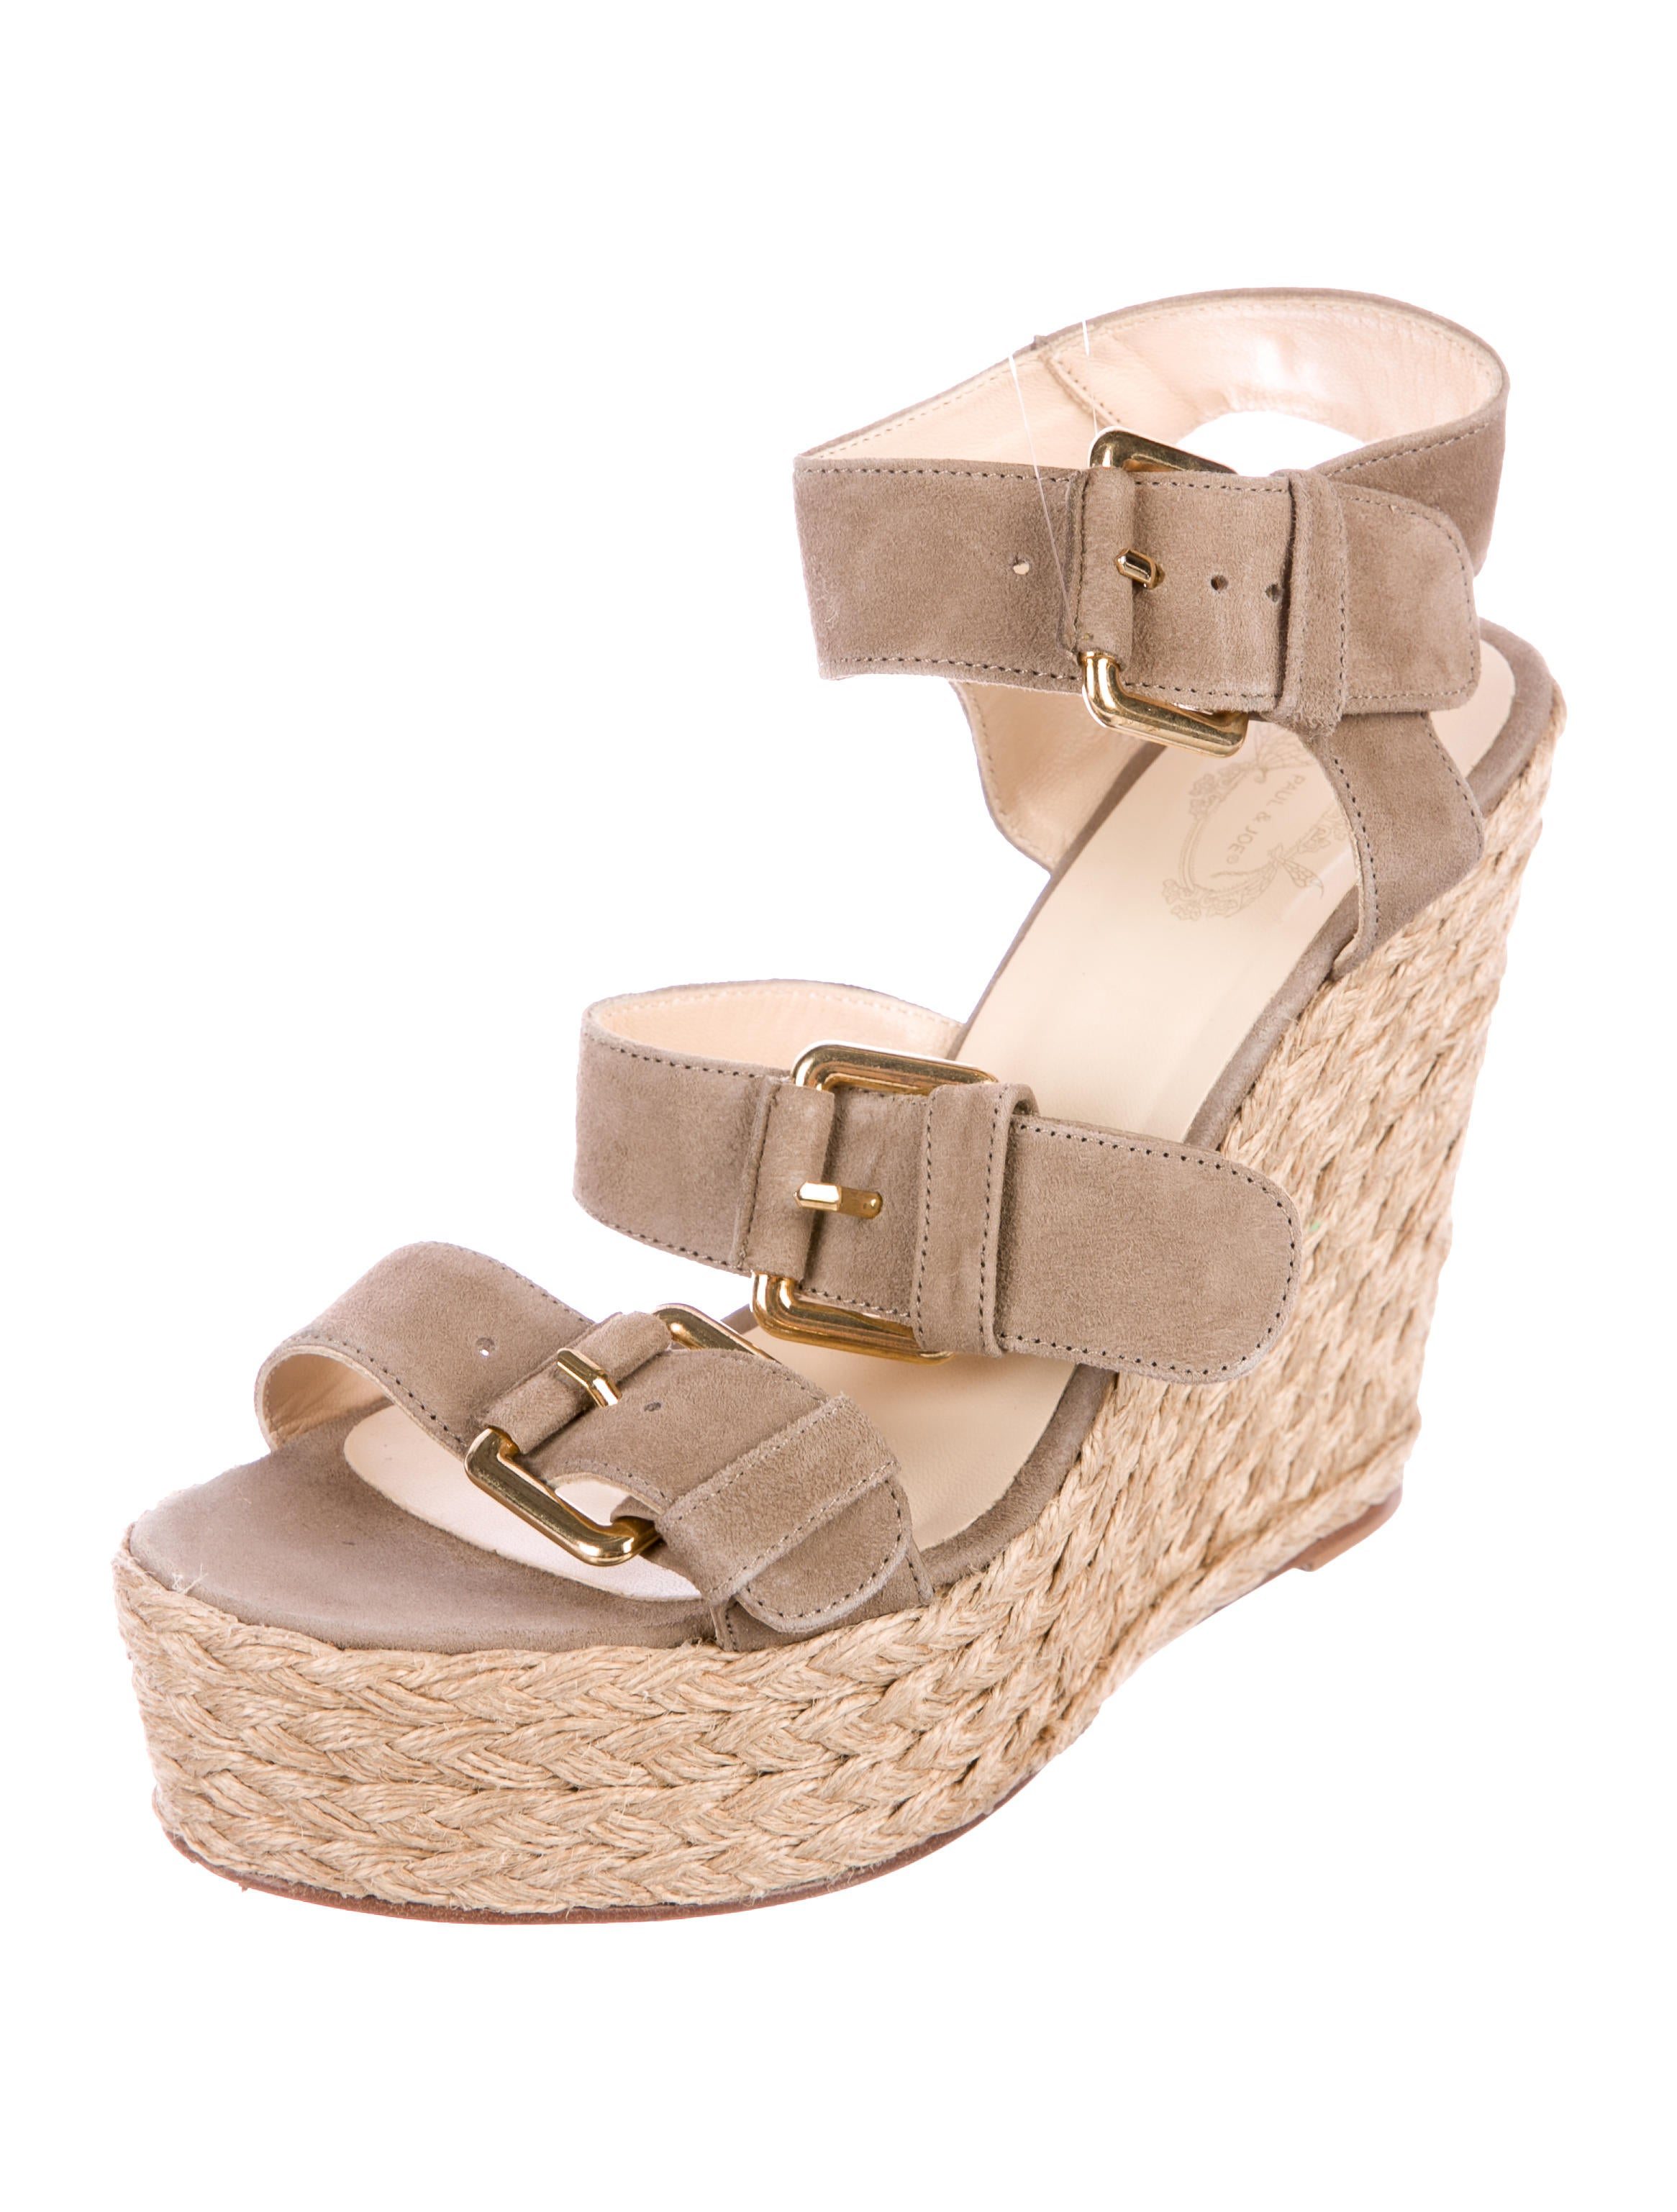 discount amazing price Paul & Joe Winni Suede Wedges clearance online cheap real sale in China ebay quality from china wholesale EIVX7SJzn